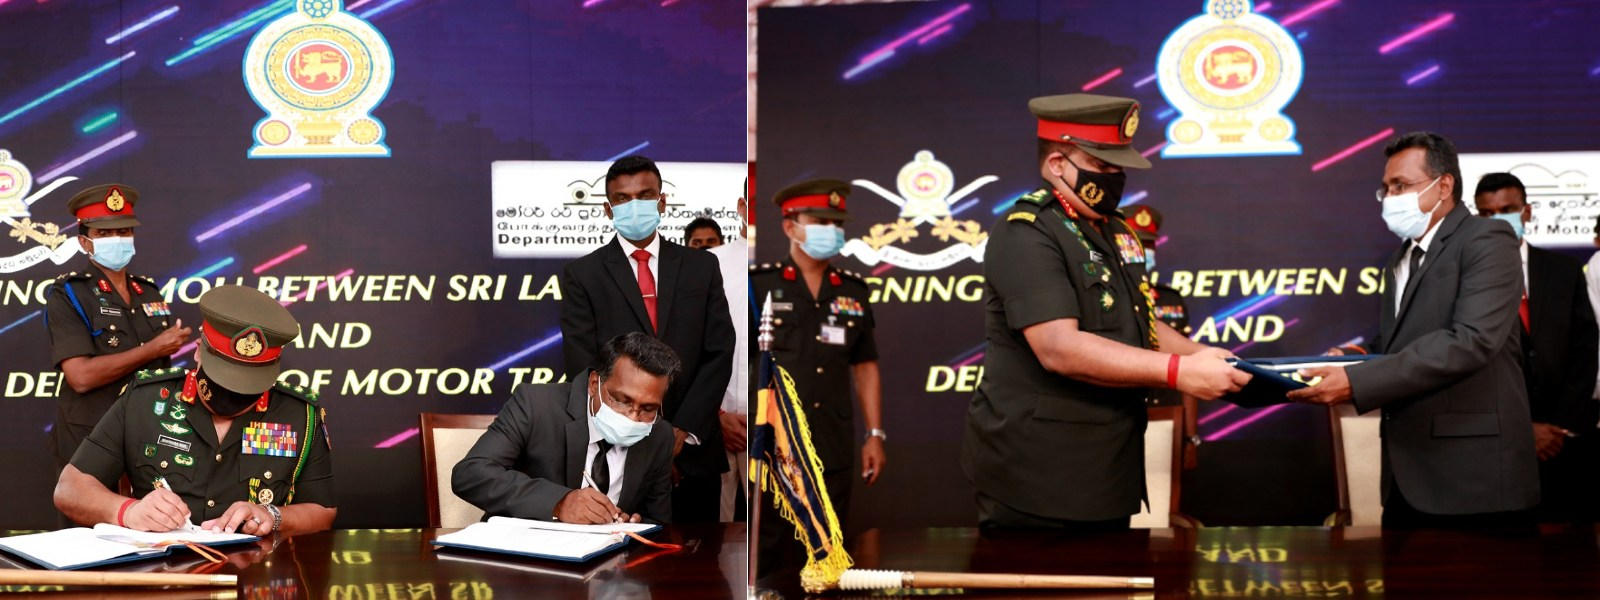 SL ARMY BEGINS PRINTING OF NATIONAL DRIVING LICENSES